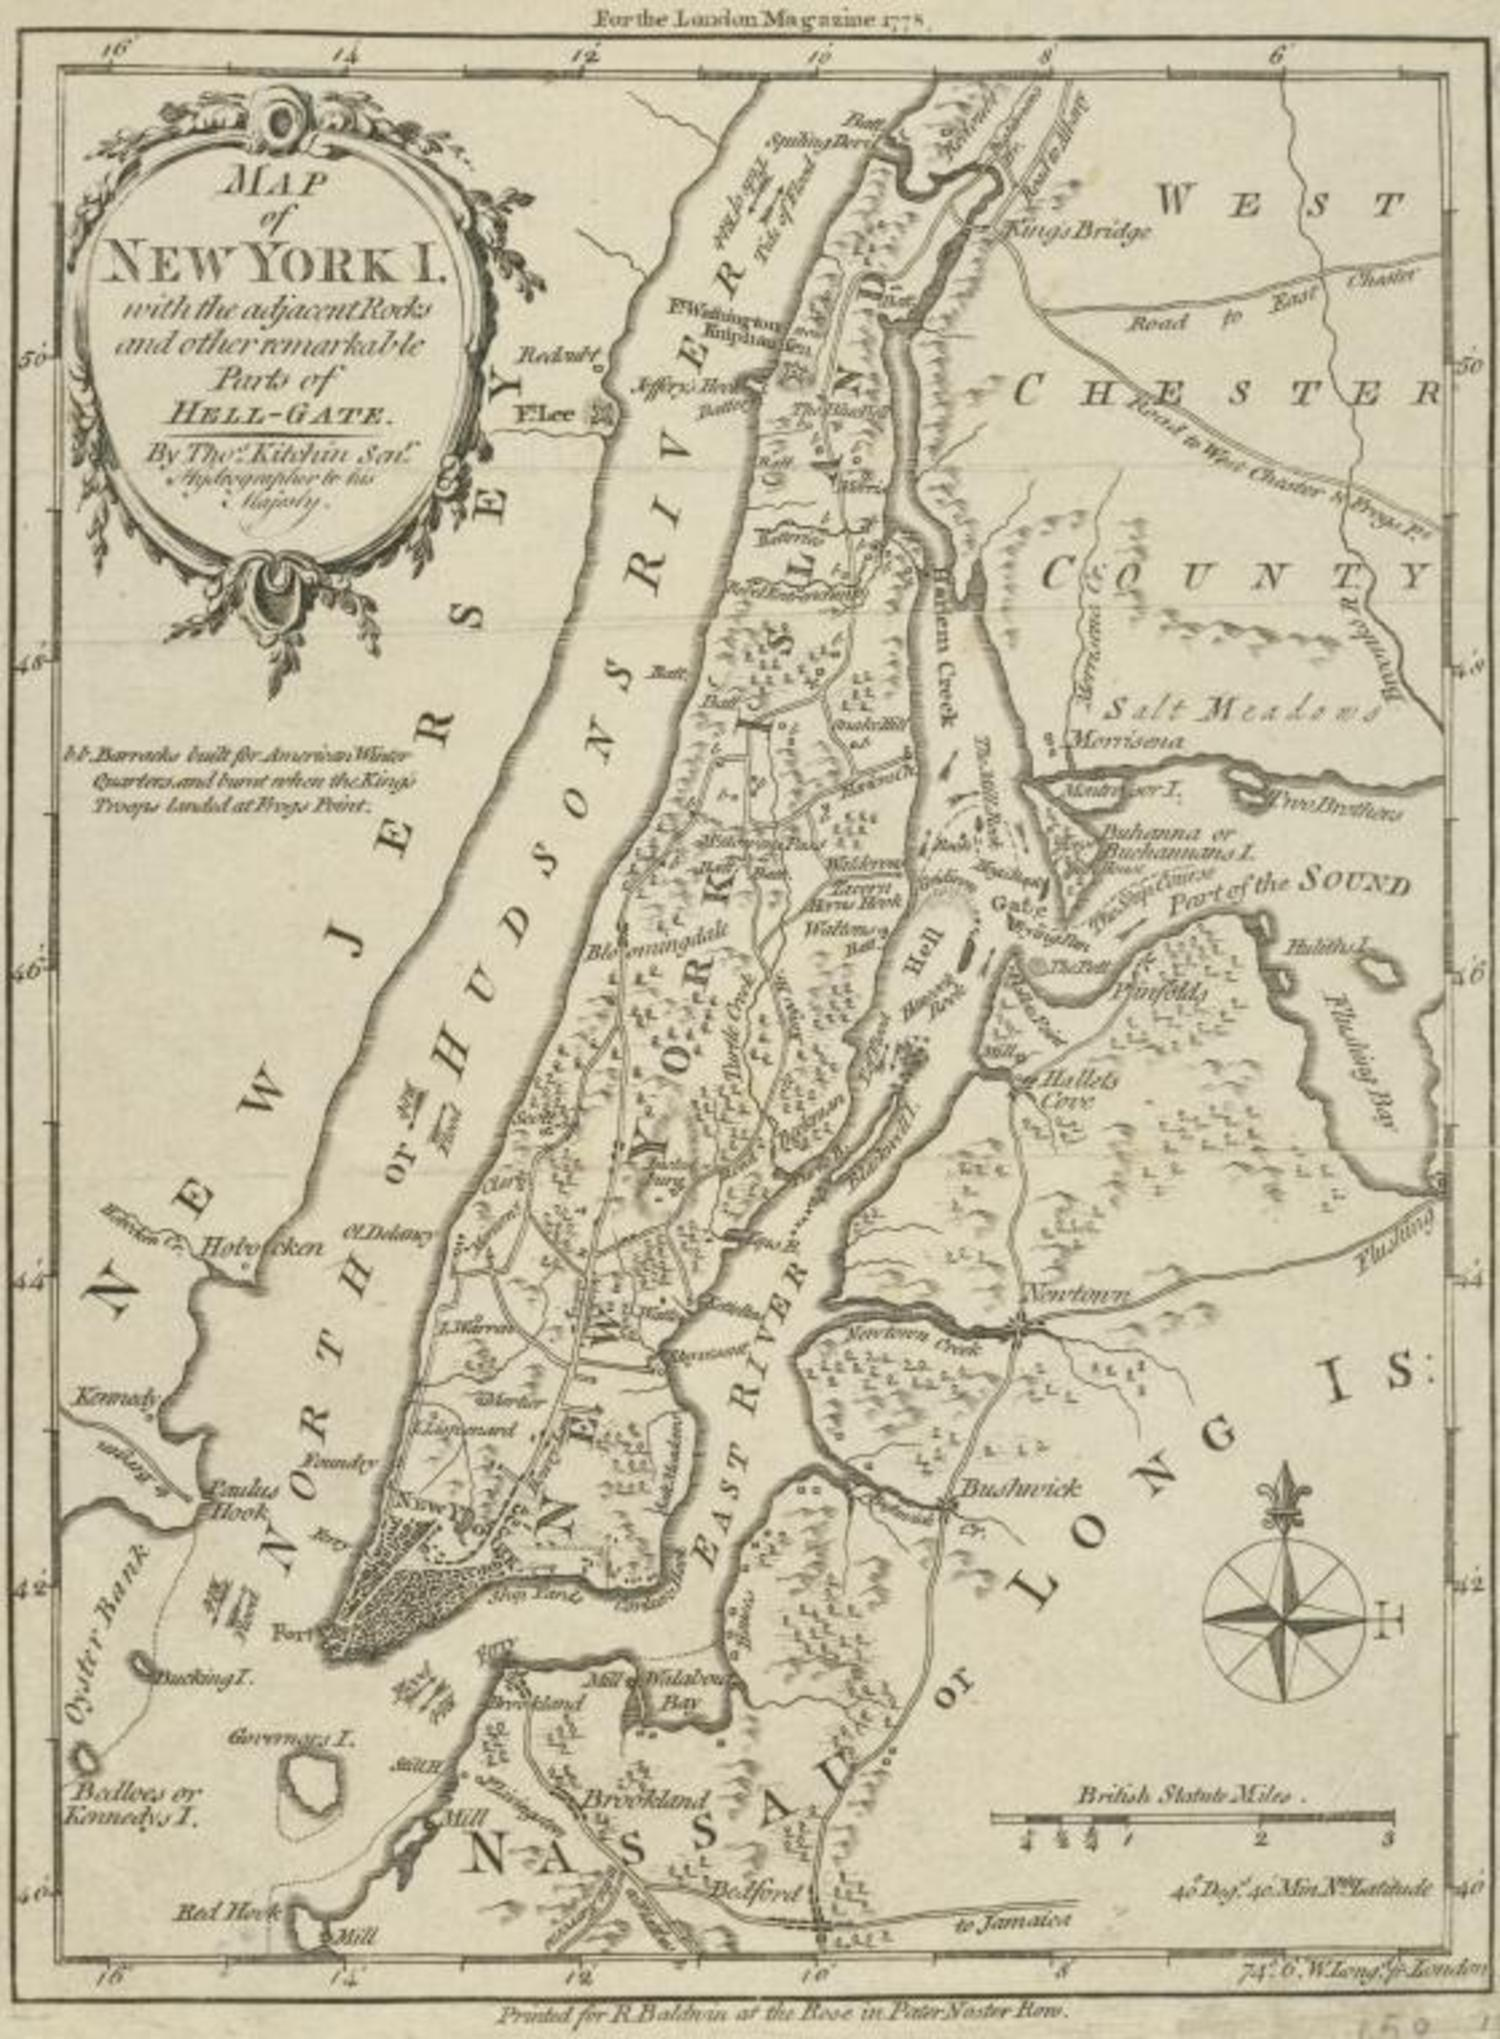 Map of New York l: with the adjacent rocks and other remarkable parts of Hell-Gate (1778)